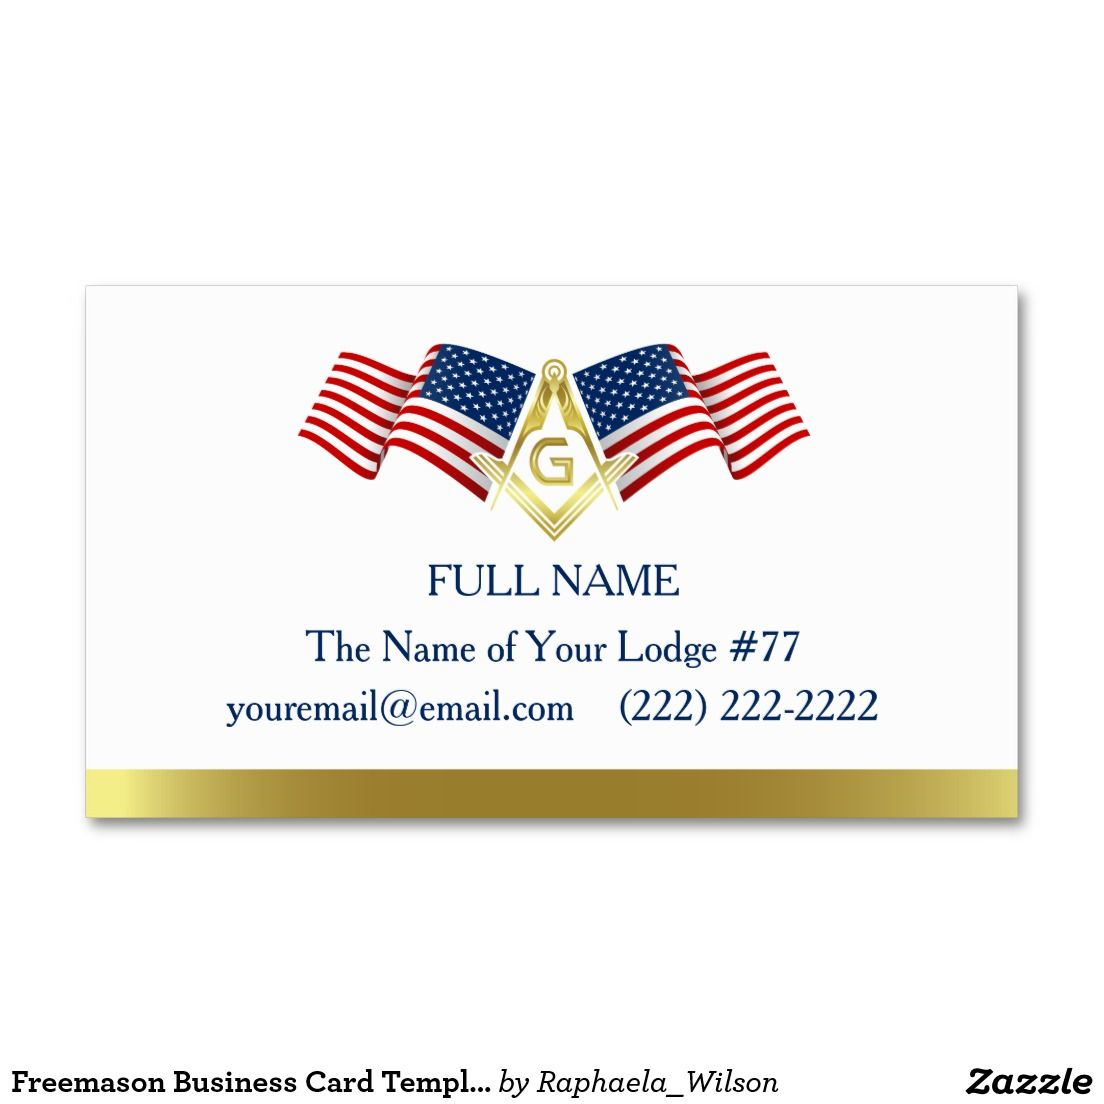 Masonic Business Card Template American Flag Zazzle Com Business Card Template American Flag Cards